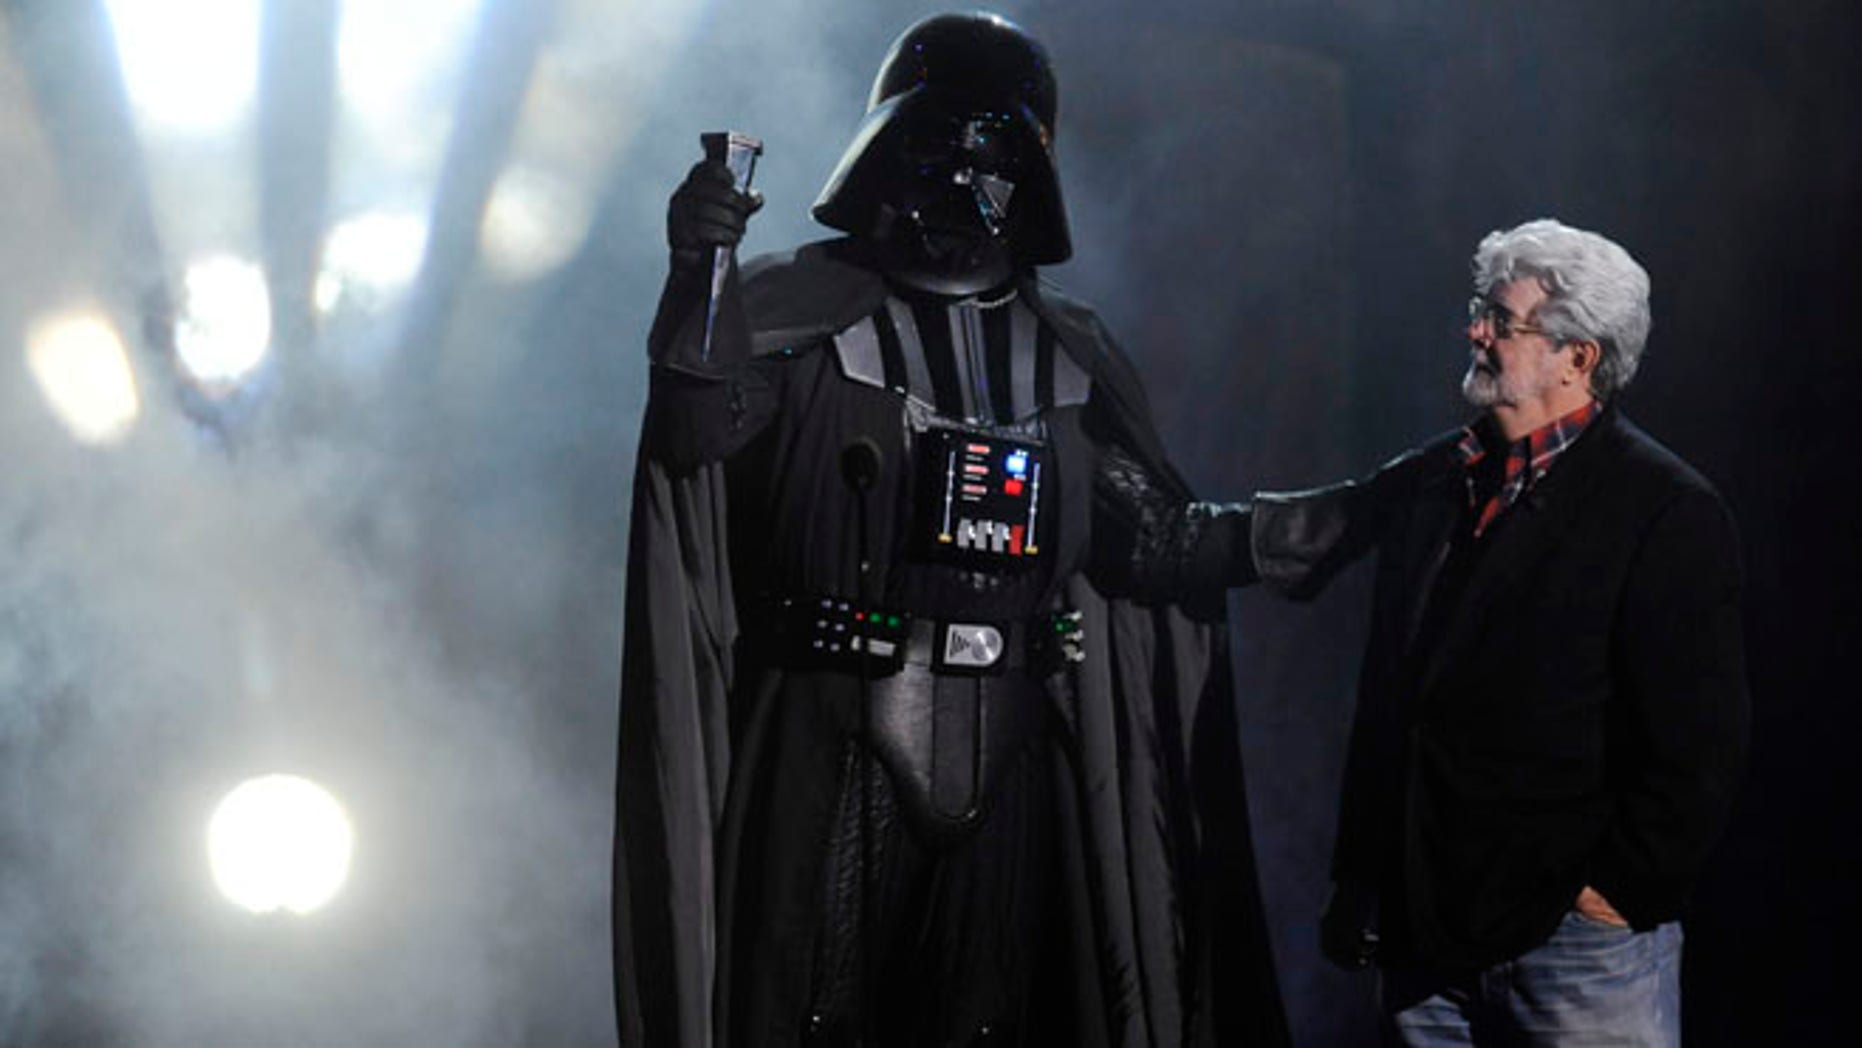 """Oct. 15, 2011: In this file photo, """"Darth Vader"""" accepts the Ultimate Villain award from """"Star Wars"""" creator George Lucas during the 2011 Scream Awards, in Los Angeles."""